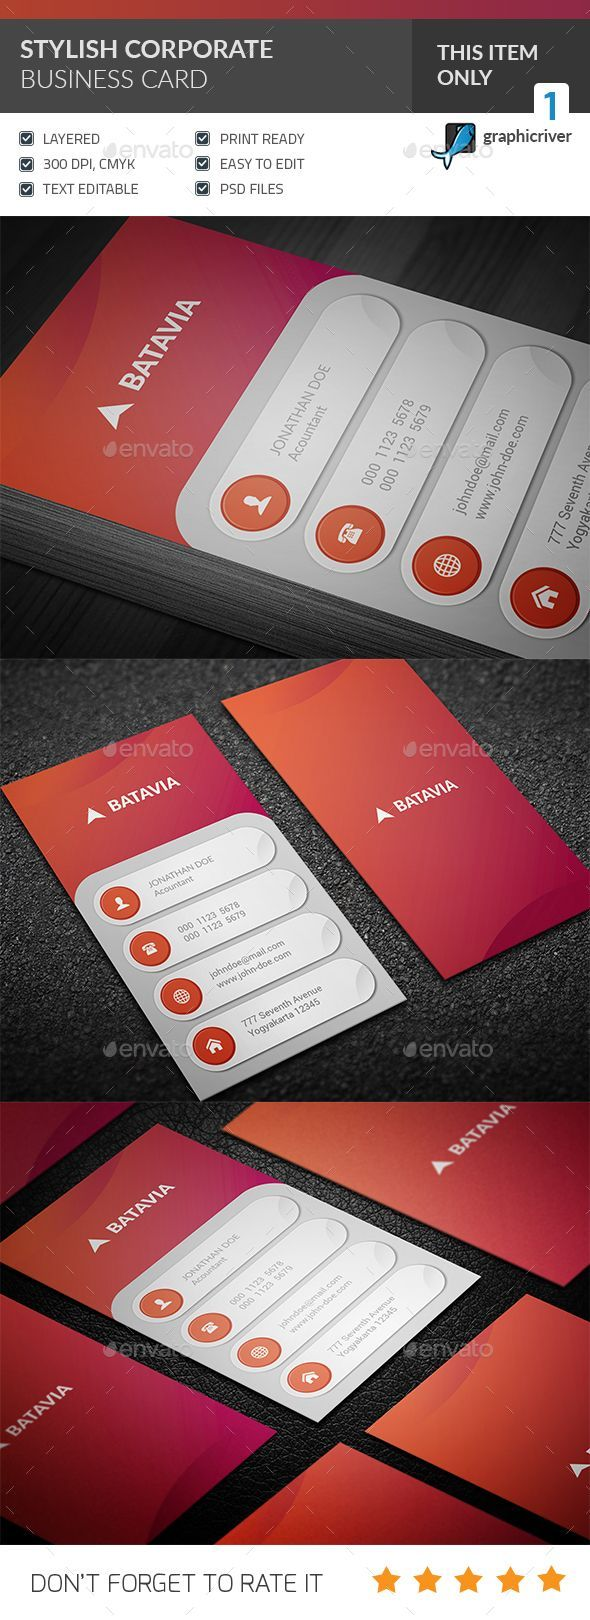 9469 best Business Cards Maker images on Pinterest | Business card ...